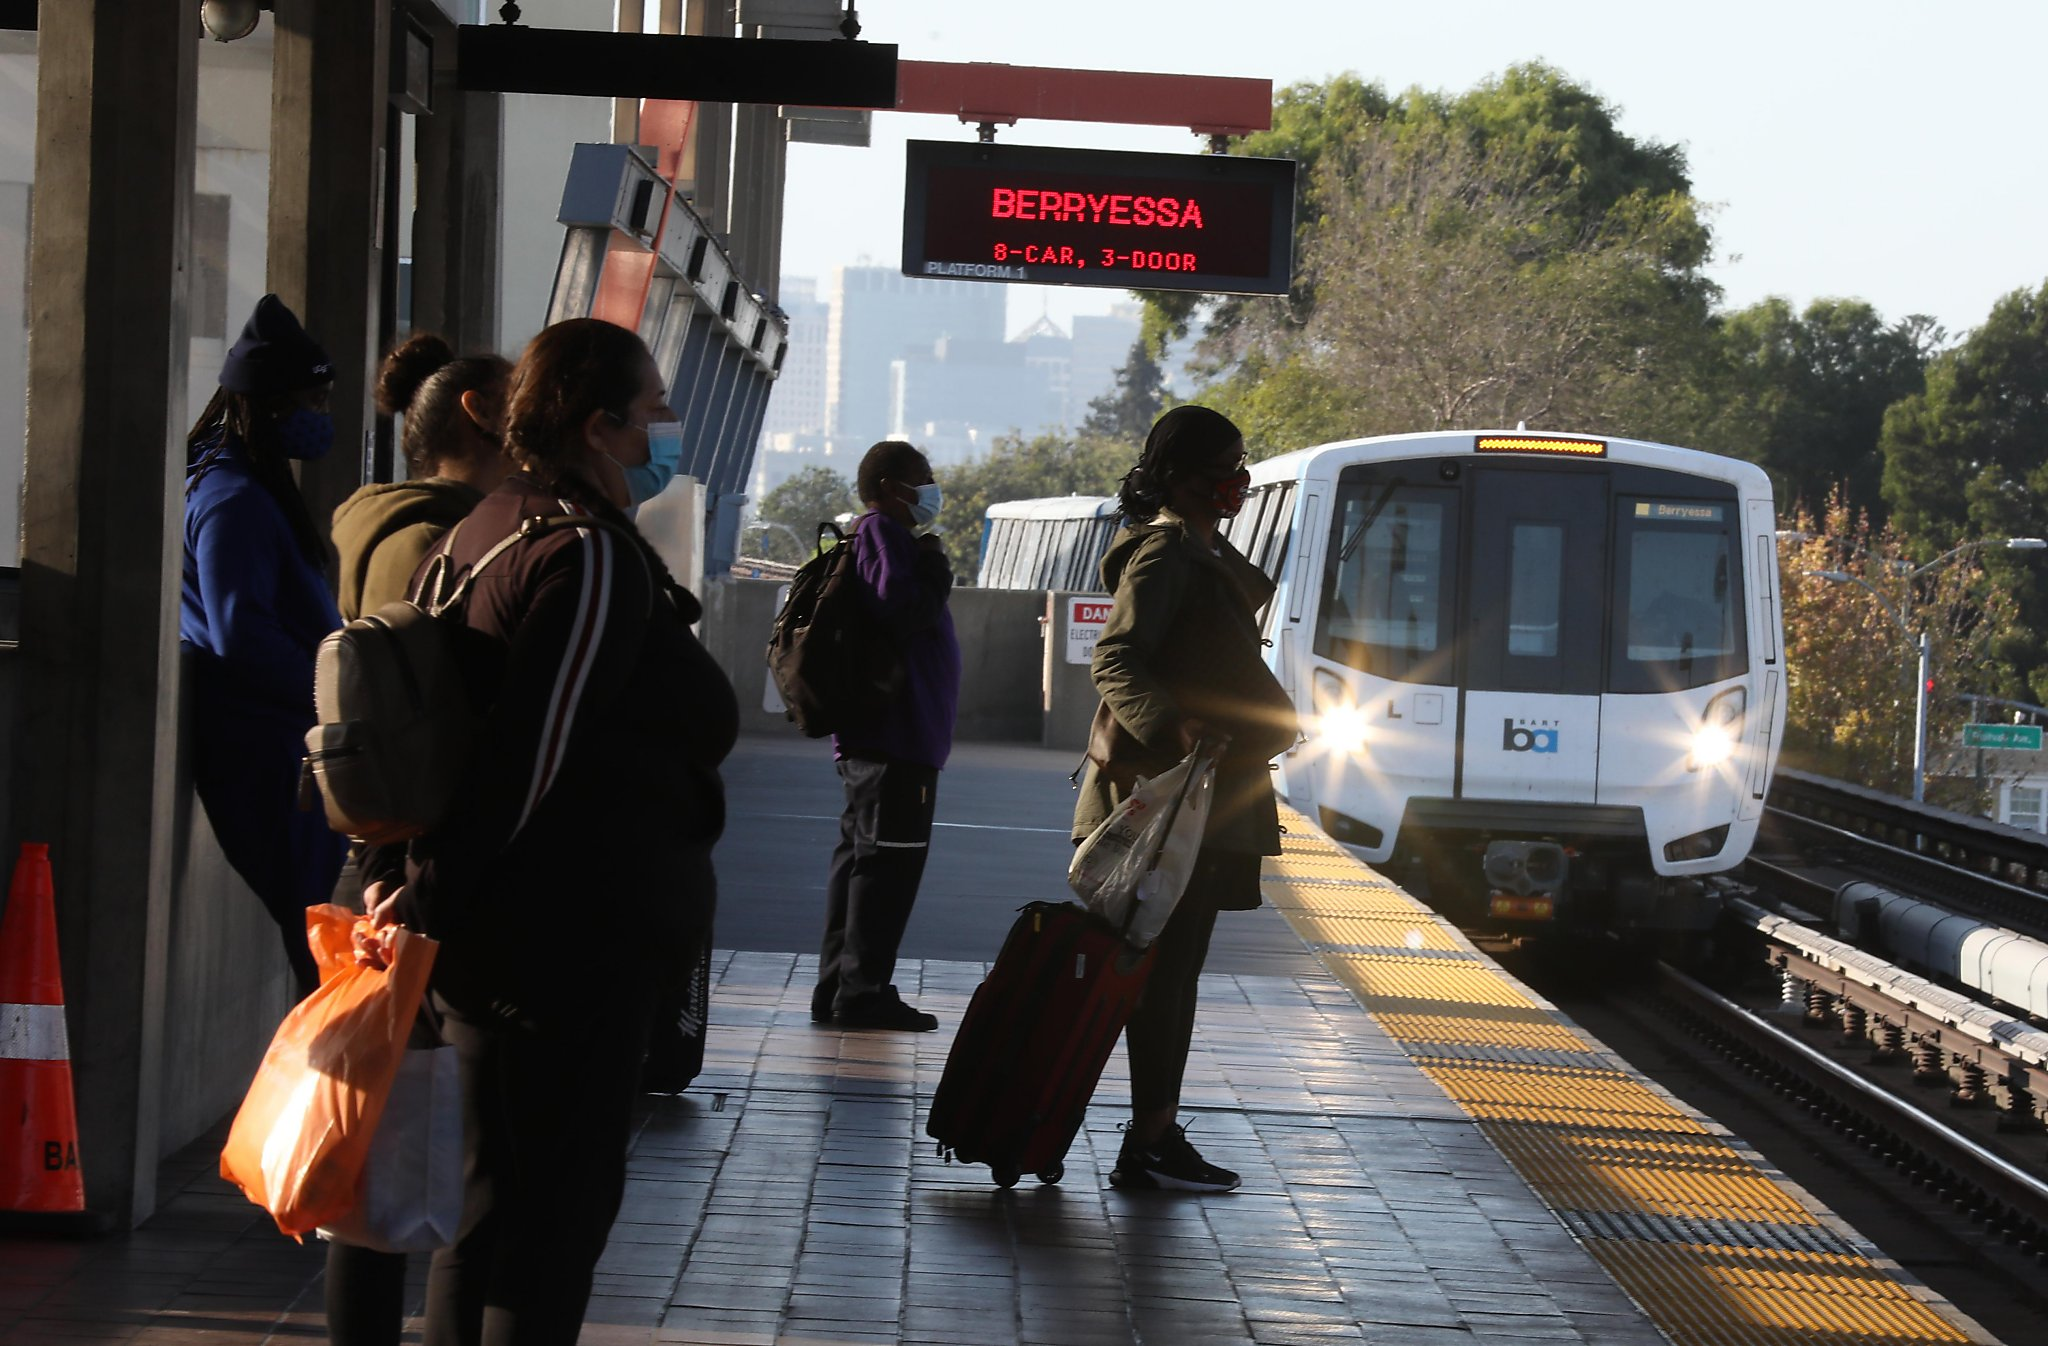 'I rely on BART': Essential workers who depend on public transit fear service cuts in pandemic